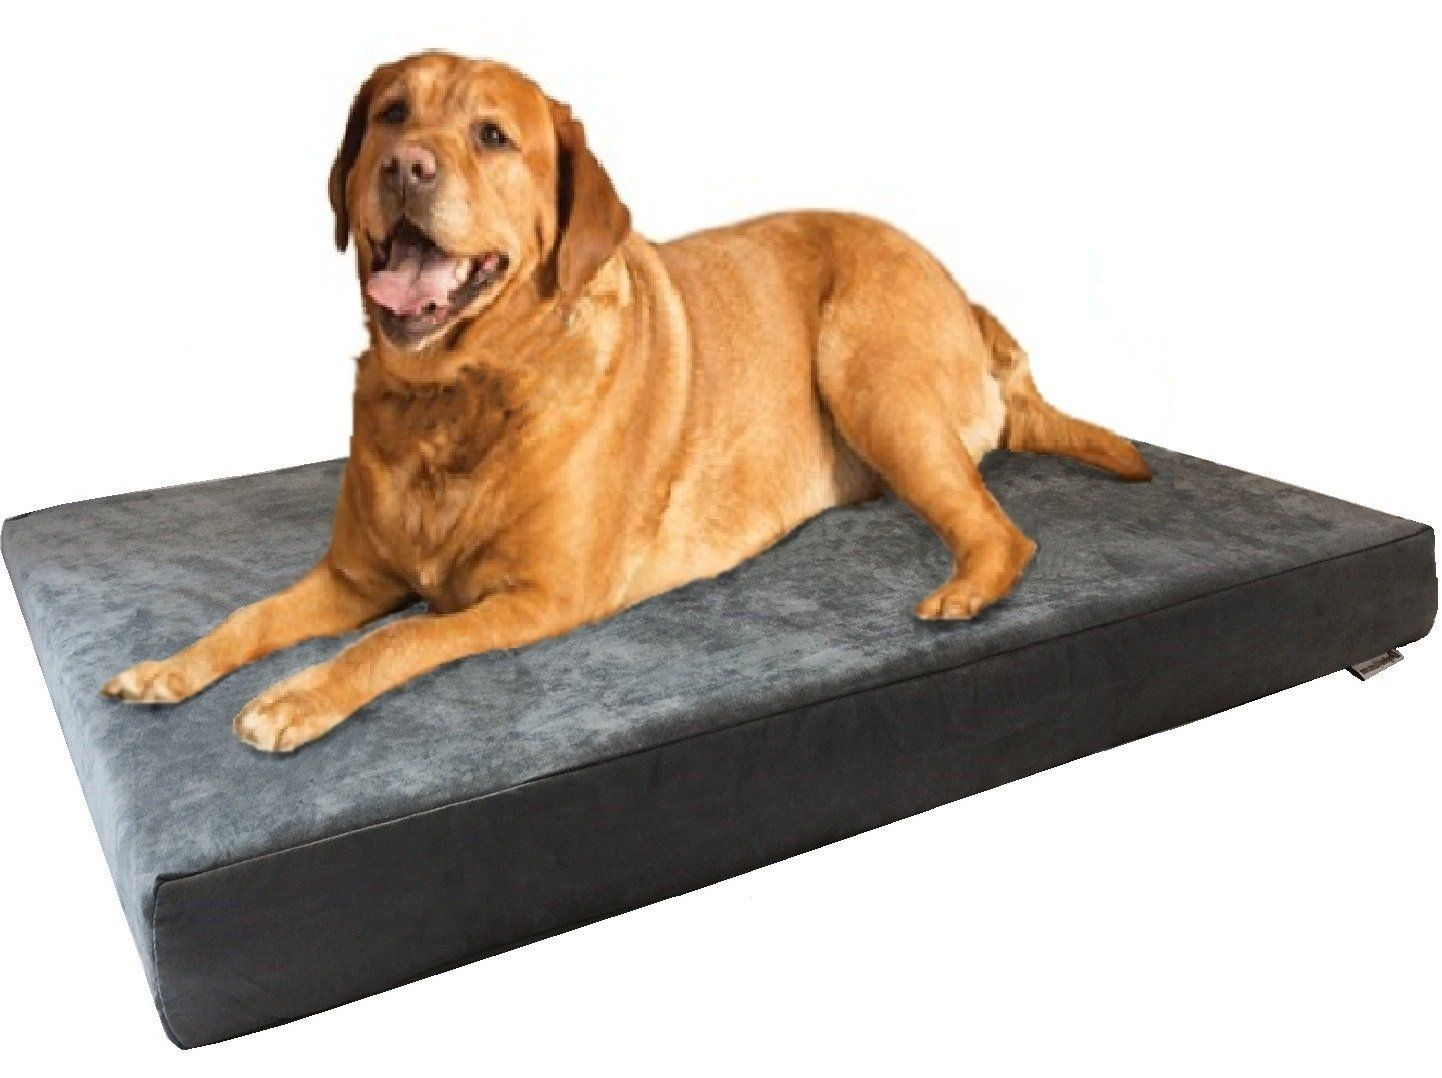 Dogbed4less Durable Orthopedic Memory Foam Dog Bed With Waterproof